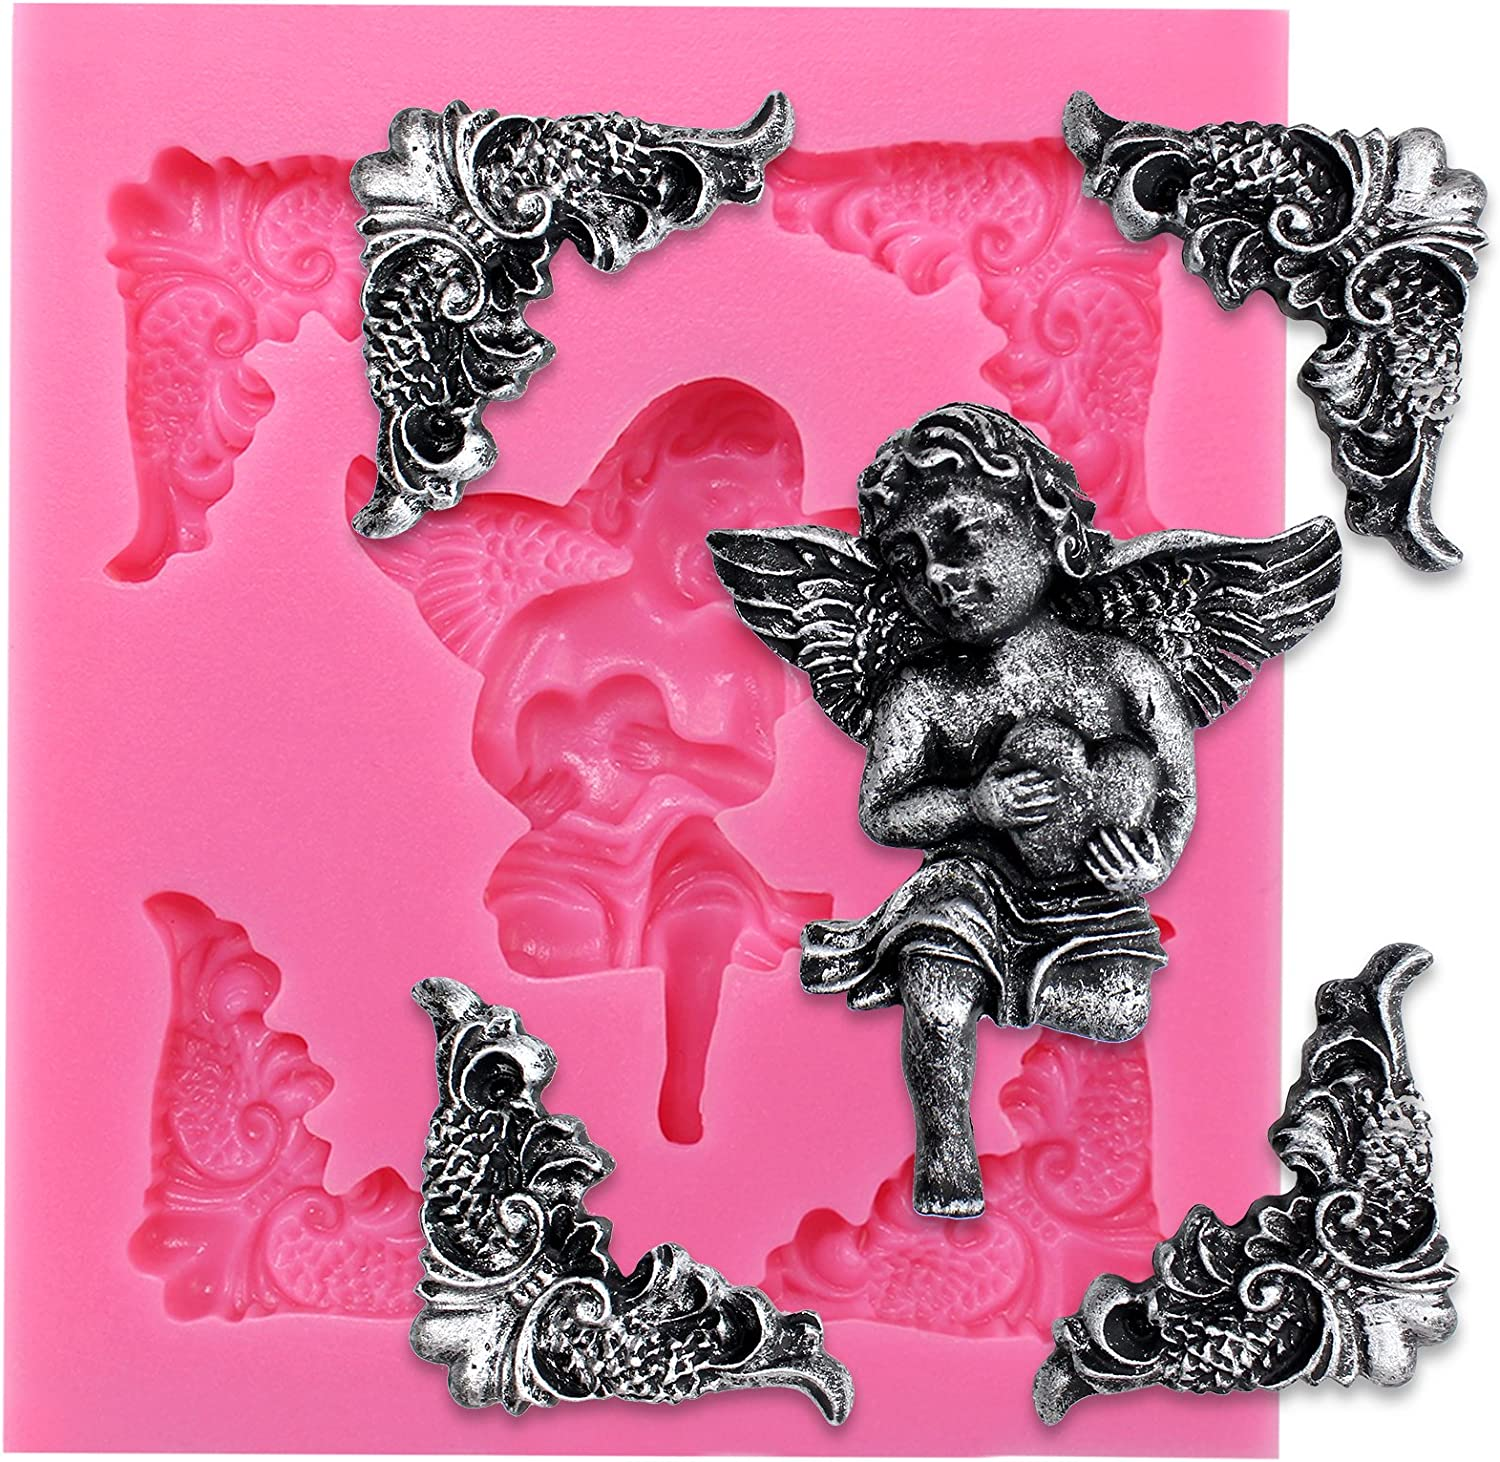 Funshowcase Angelic Cherub Hold Heart with Frame Corner Fondant Silicone Mold for Sugarcraft, Cake Decoration, Cupcake Topper, Chocolate, Pastry, Cookie Decor, Jewelry, Polymer Clay, Crafting Projects